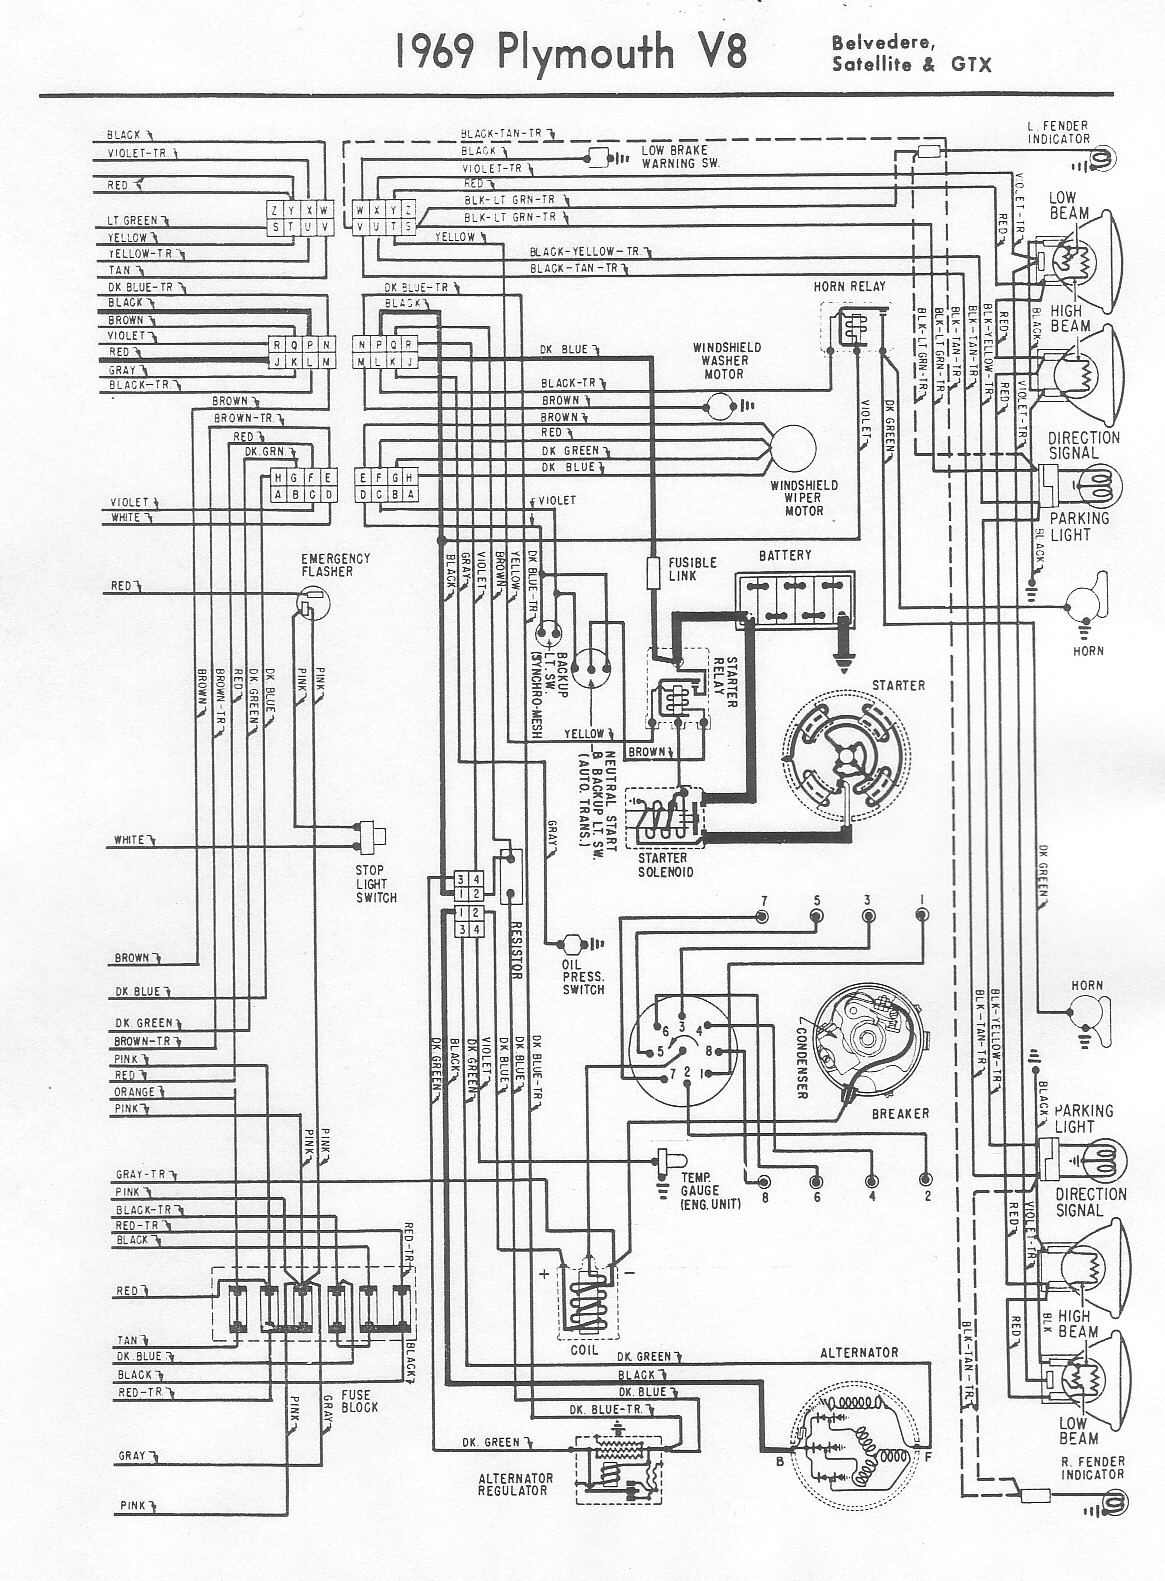 68 Dodge Coronet Wiring Diagram Opinions About Wiring Diagram \u2022  Imperial Wiring Diagrams 66 Mopar Wiper Wiring Diagram